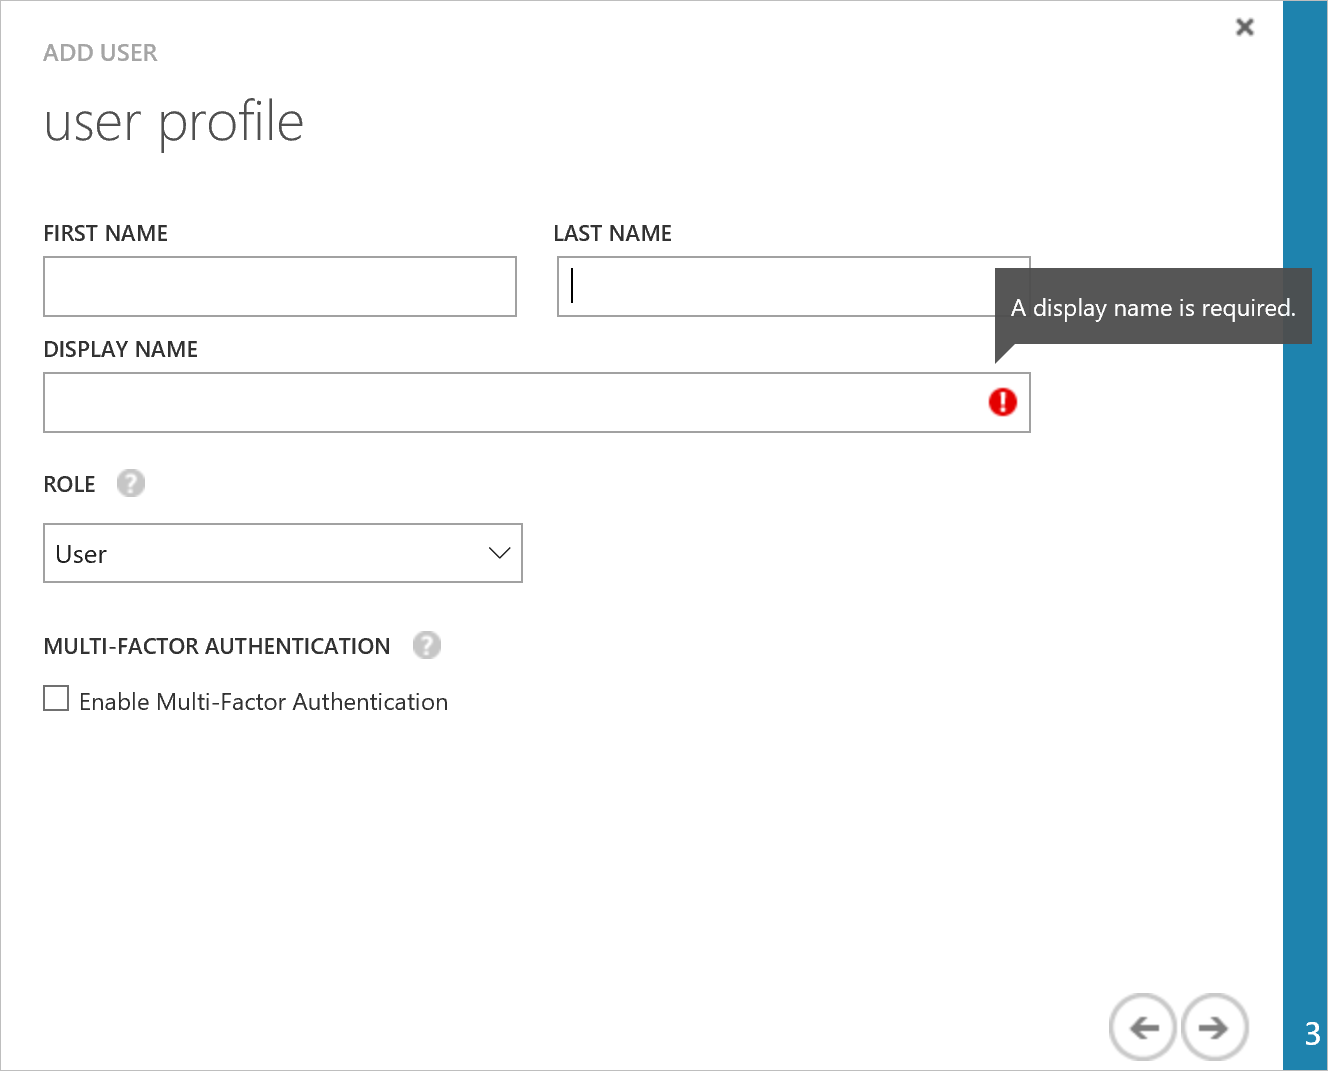 How to add a user in azure - User Profile